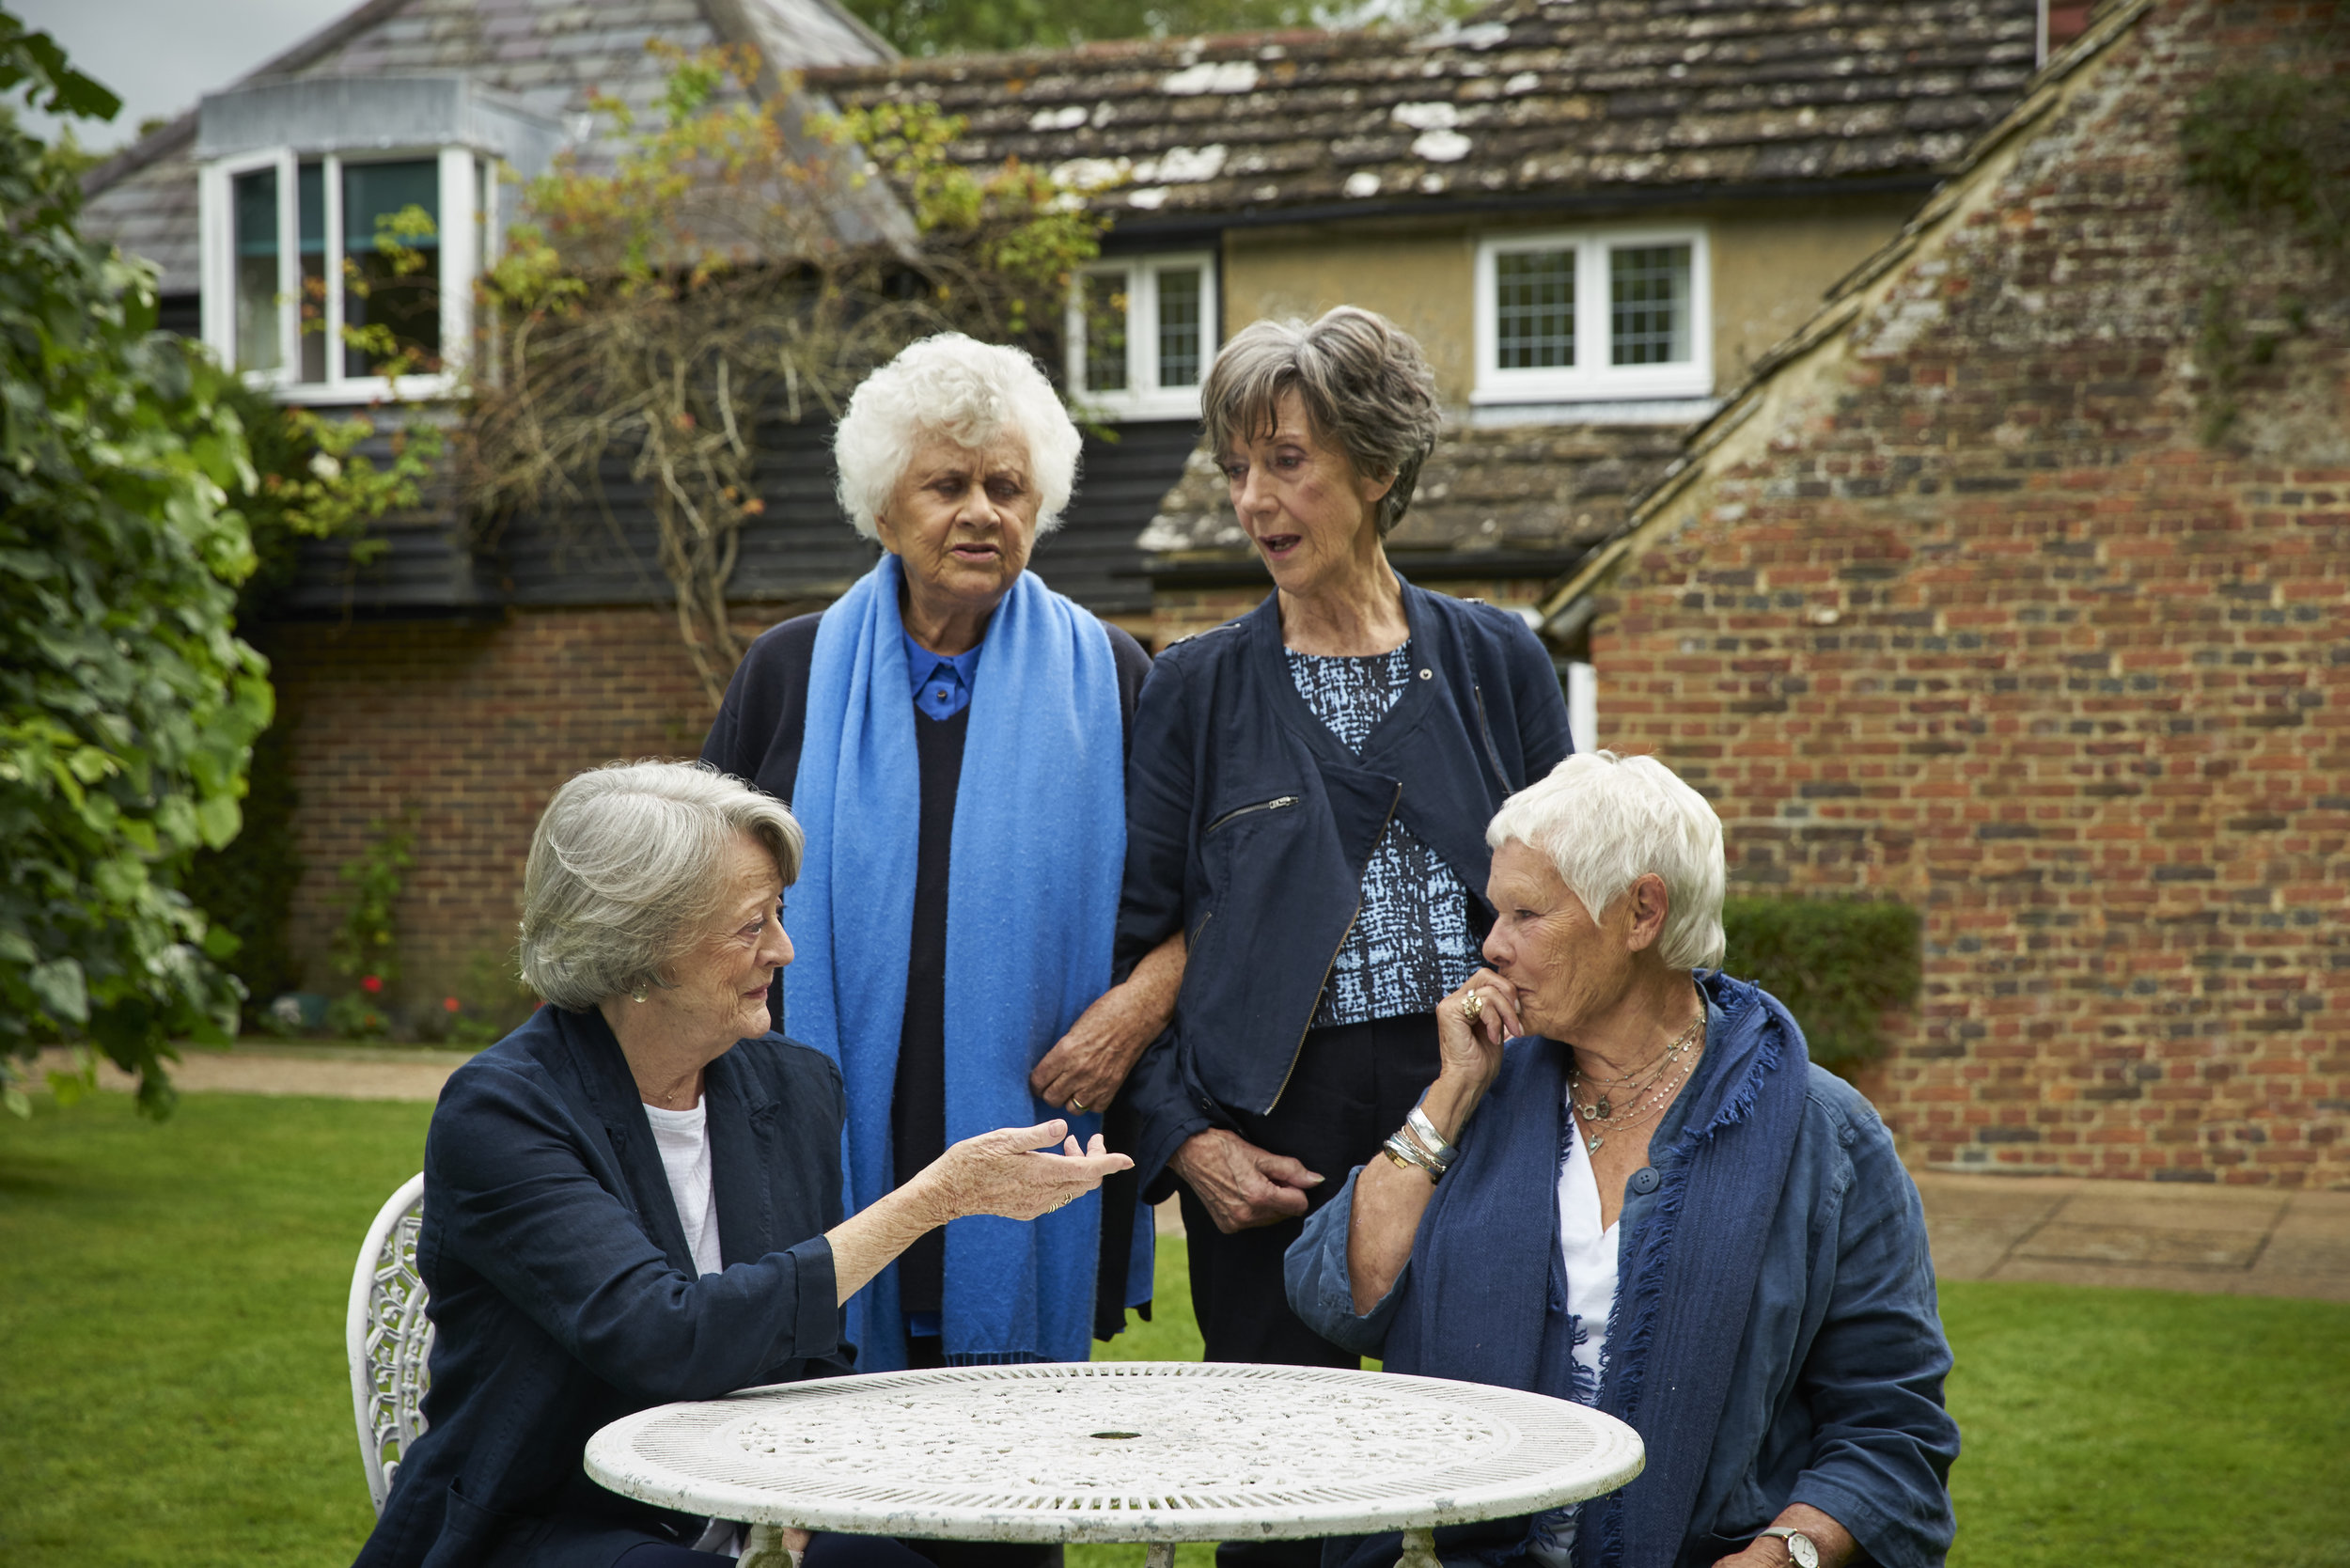 """Four legends of English theater and film — Dame Maggie Smith, Dame Joan Plowright, Dame Eileen Atkins and Dame Judi Dench (clockwise from lower left) — dish in the documentary """"Tea With the Dames."""" (Photo courtesy Sundance Selects)"""